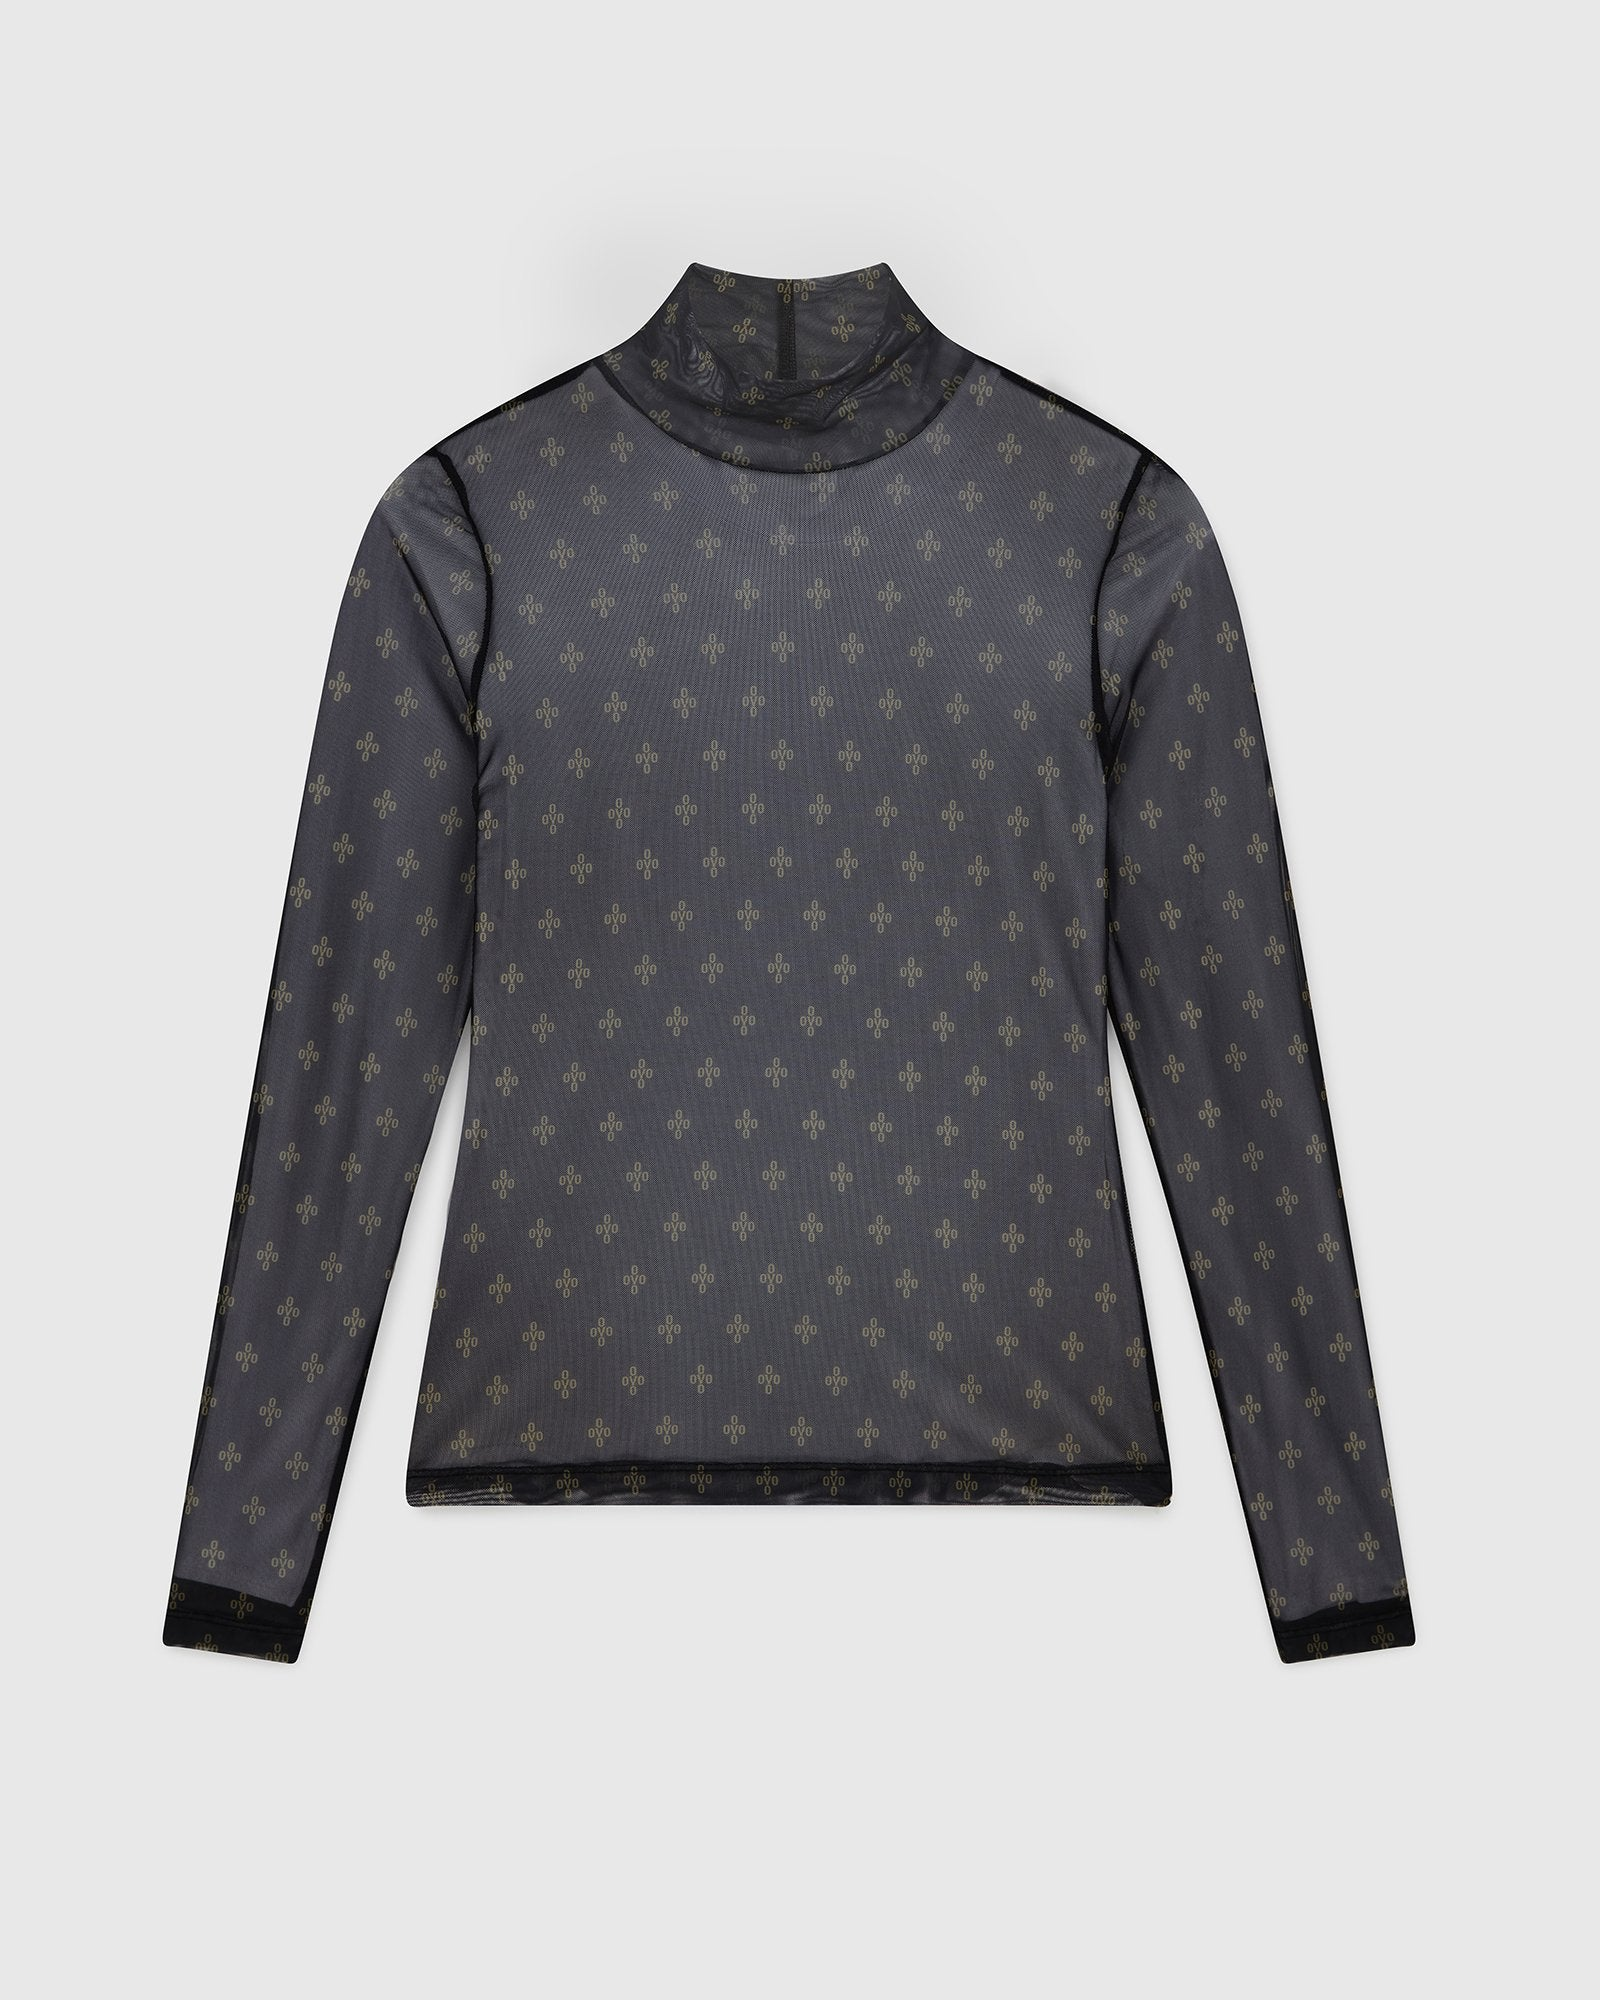 WMNS MONOGRAM MOCK NECK - BLACK IMAGE #1